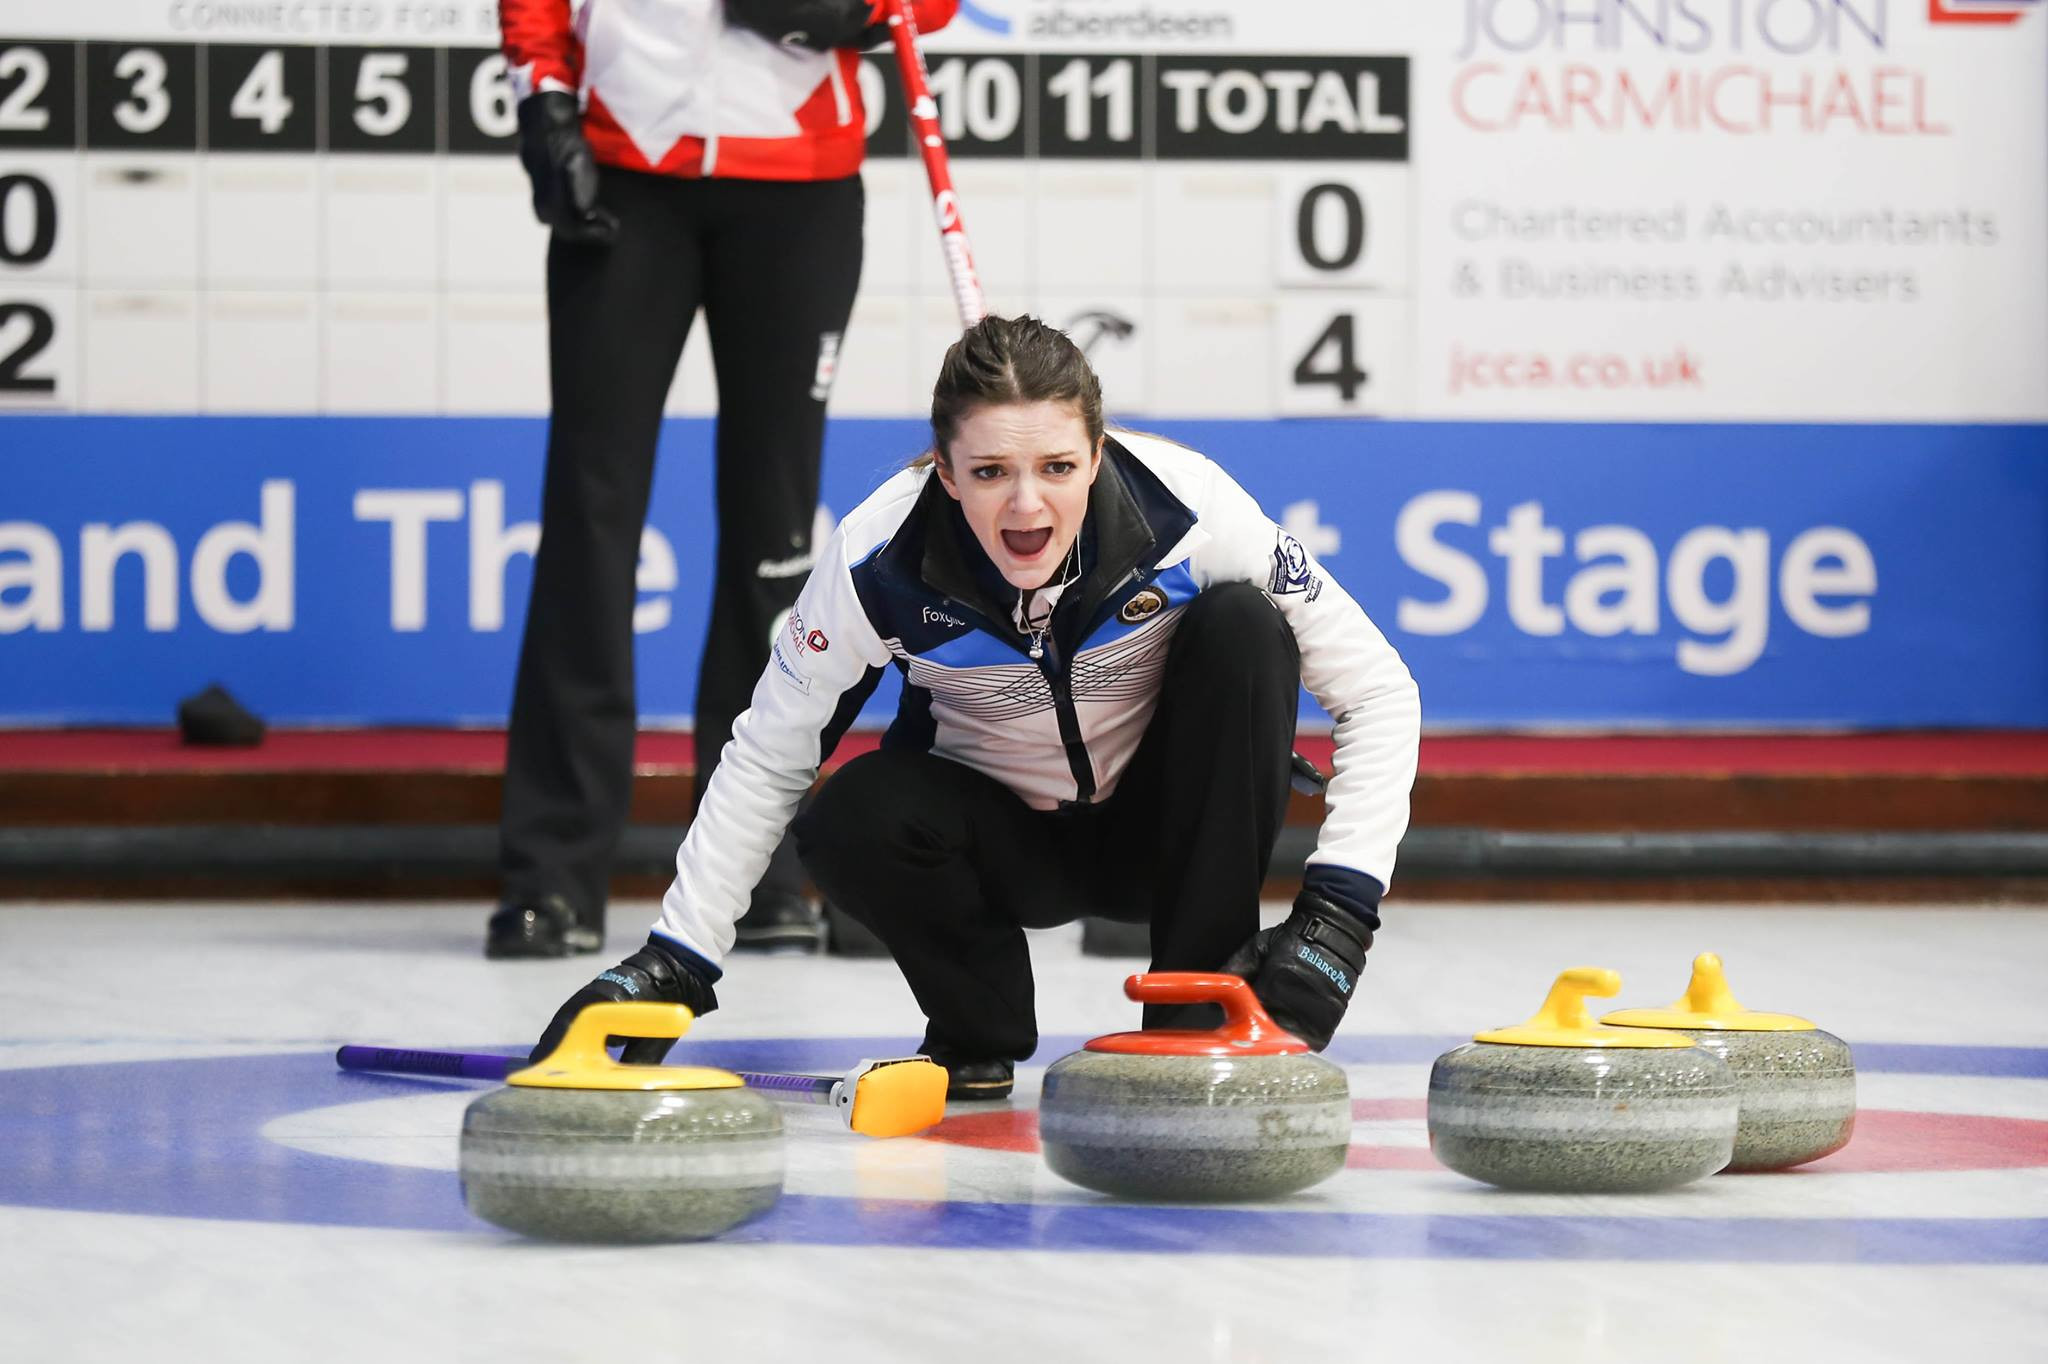 Round-robin action continued today at the World Junior Curling Championships ©WCF